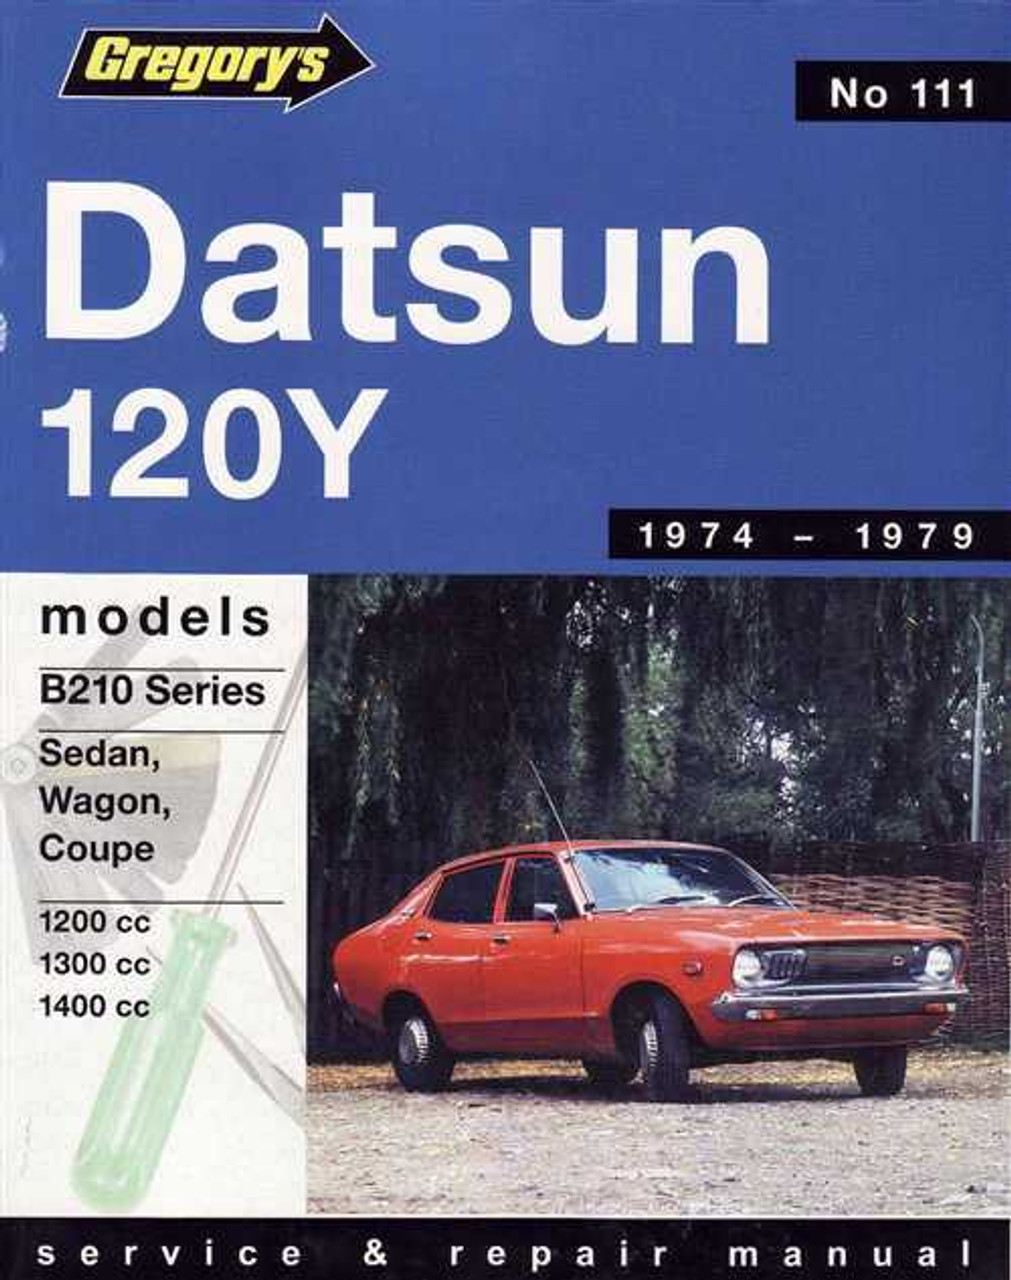 nissan datsun 120y 1974 1979 workshop manual rh automotobookshop com au datsun 1200 manual download datsun 1200 manual